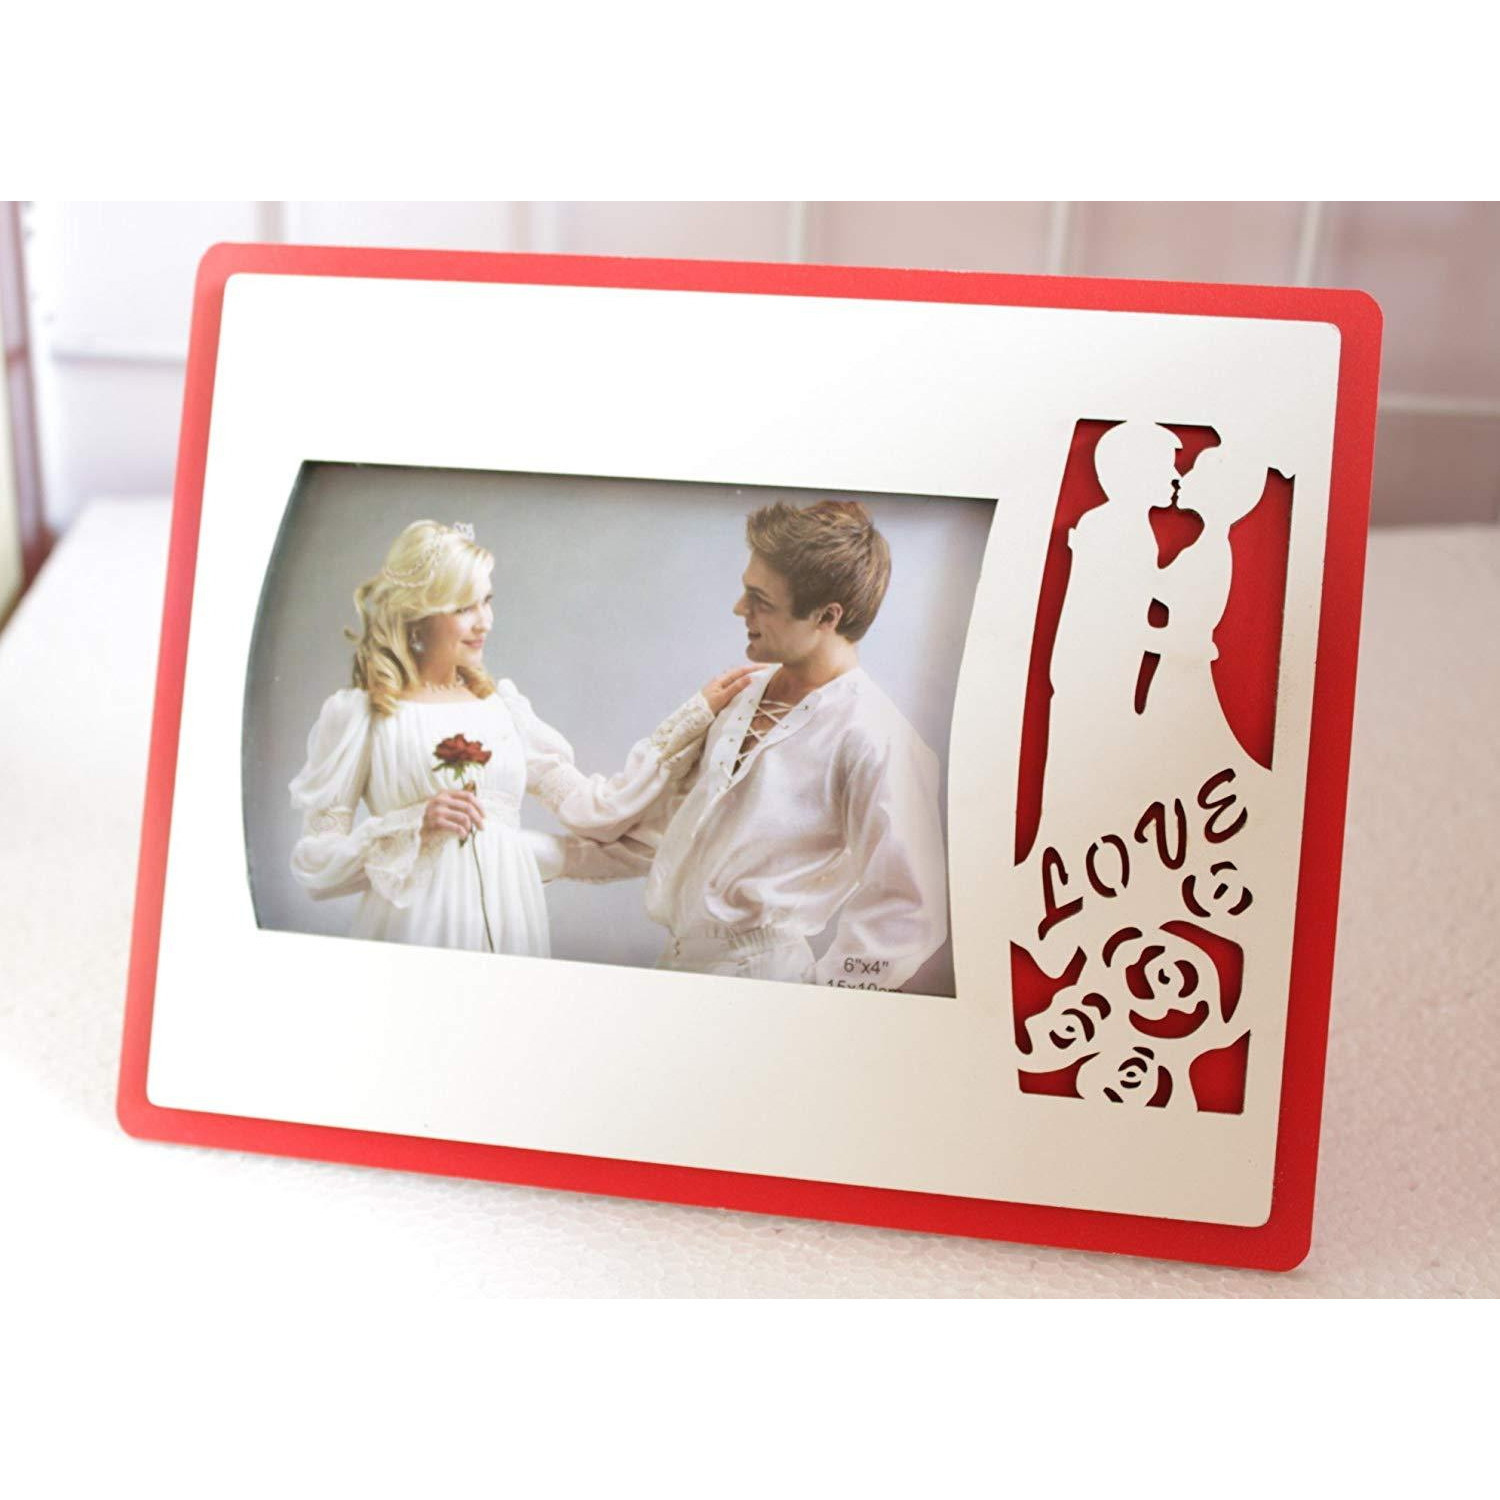 Buy Online Valentine Gift Love Stylish Photo Frame Gift For